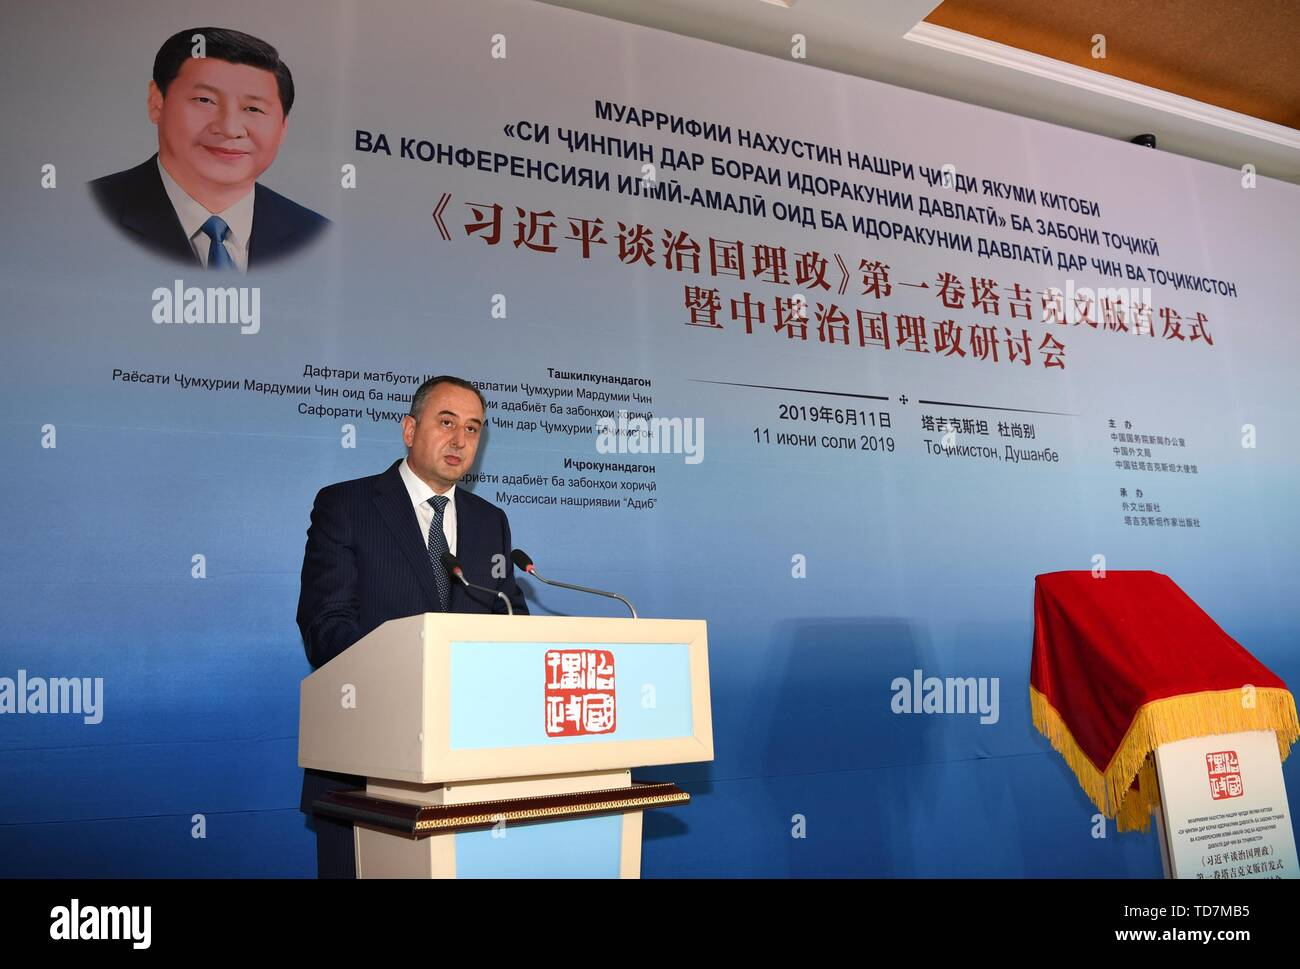 (190613) -- DUSHANBE, June 13, 2019 (Xinhua) -- First Deputy Prime Minister of Tajikistan Davlatali Said reads the letter from Tajik President Emomali Rahmon to congratulate on the publication of the Tajik edition of the first volume of 'Xi Jinping: The Governance of China' in Dushanbe, capital of Tajikistan, June 11, 2019. The Tajik edition of the first volume of 'Xi Jinping: The Governance of China' has been released here at a China-Tajikistan seminar on state governing, prior to the state visit of the Chinese president to the Central Asian country. Tajik President Emomali Rahmon congra - Stock Image